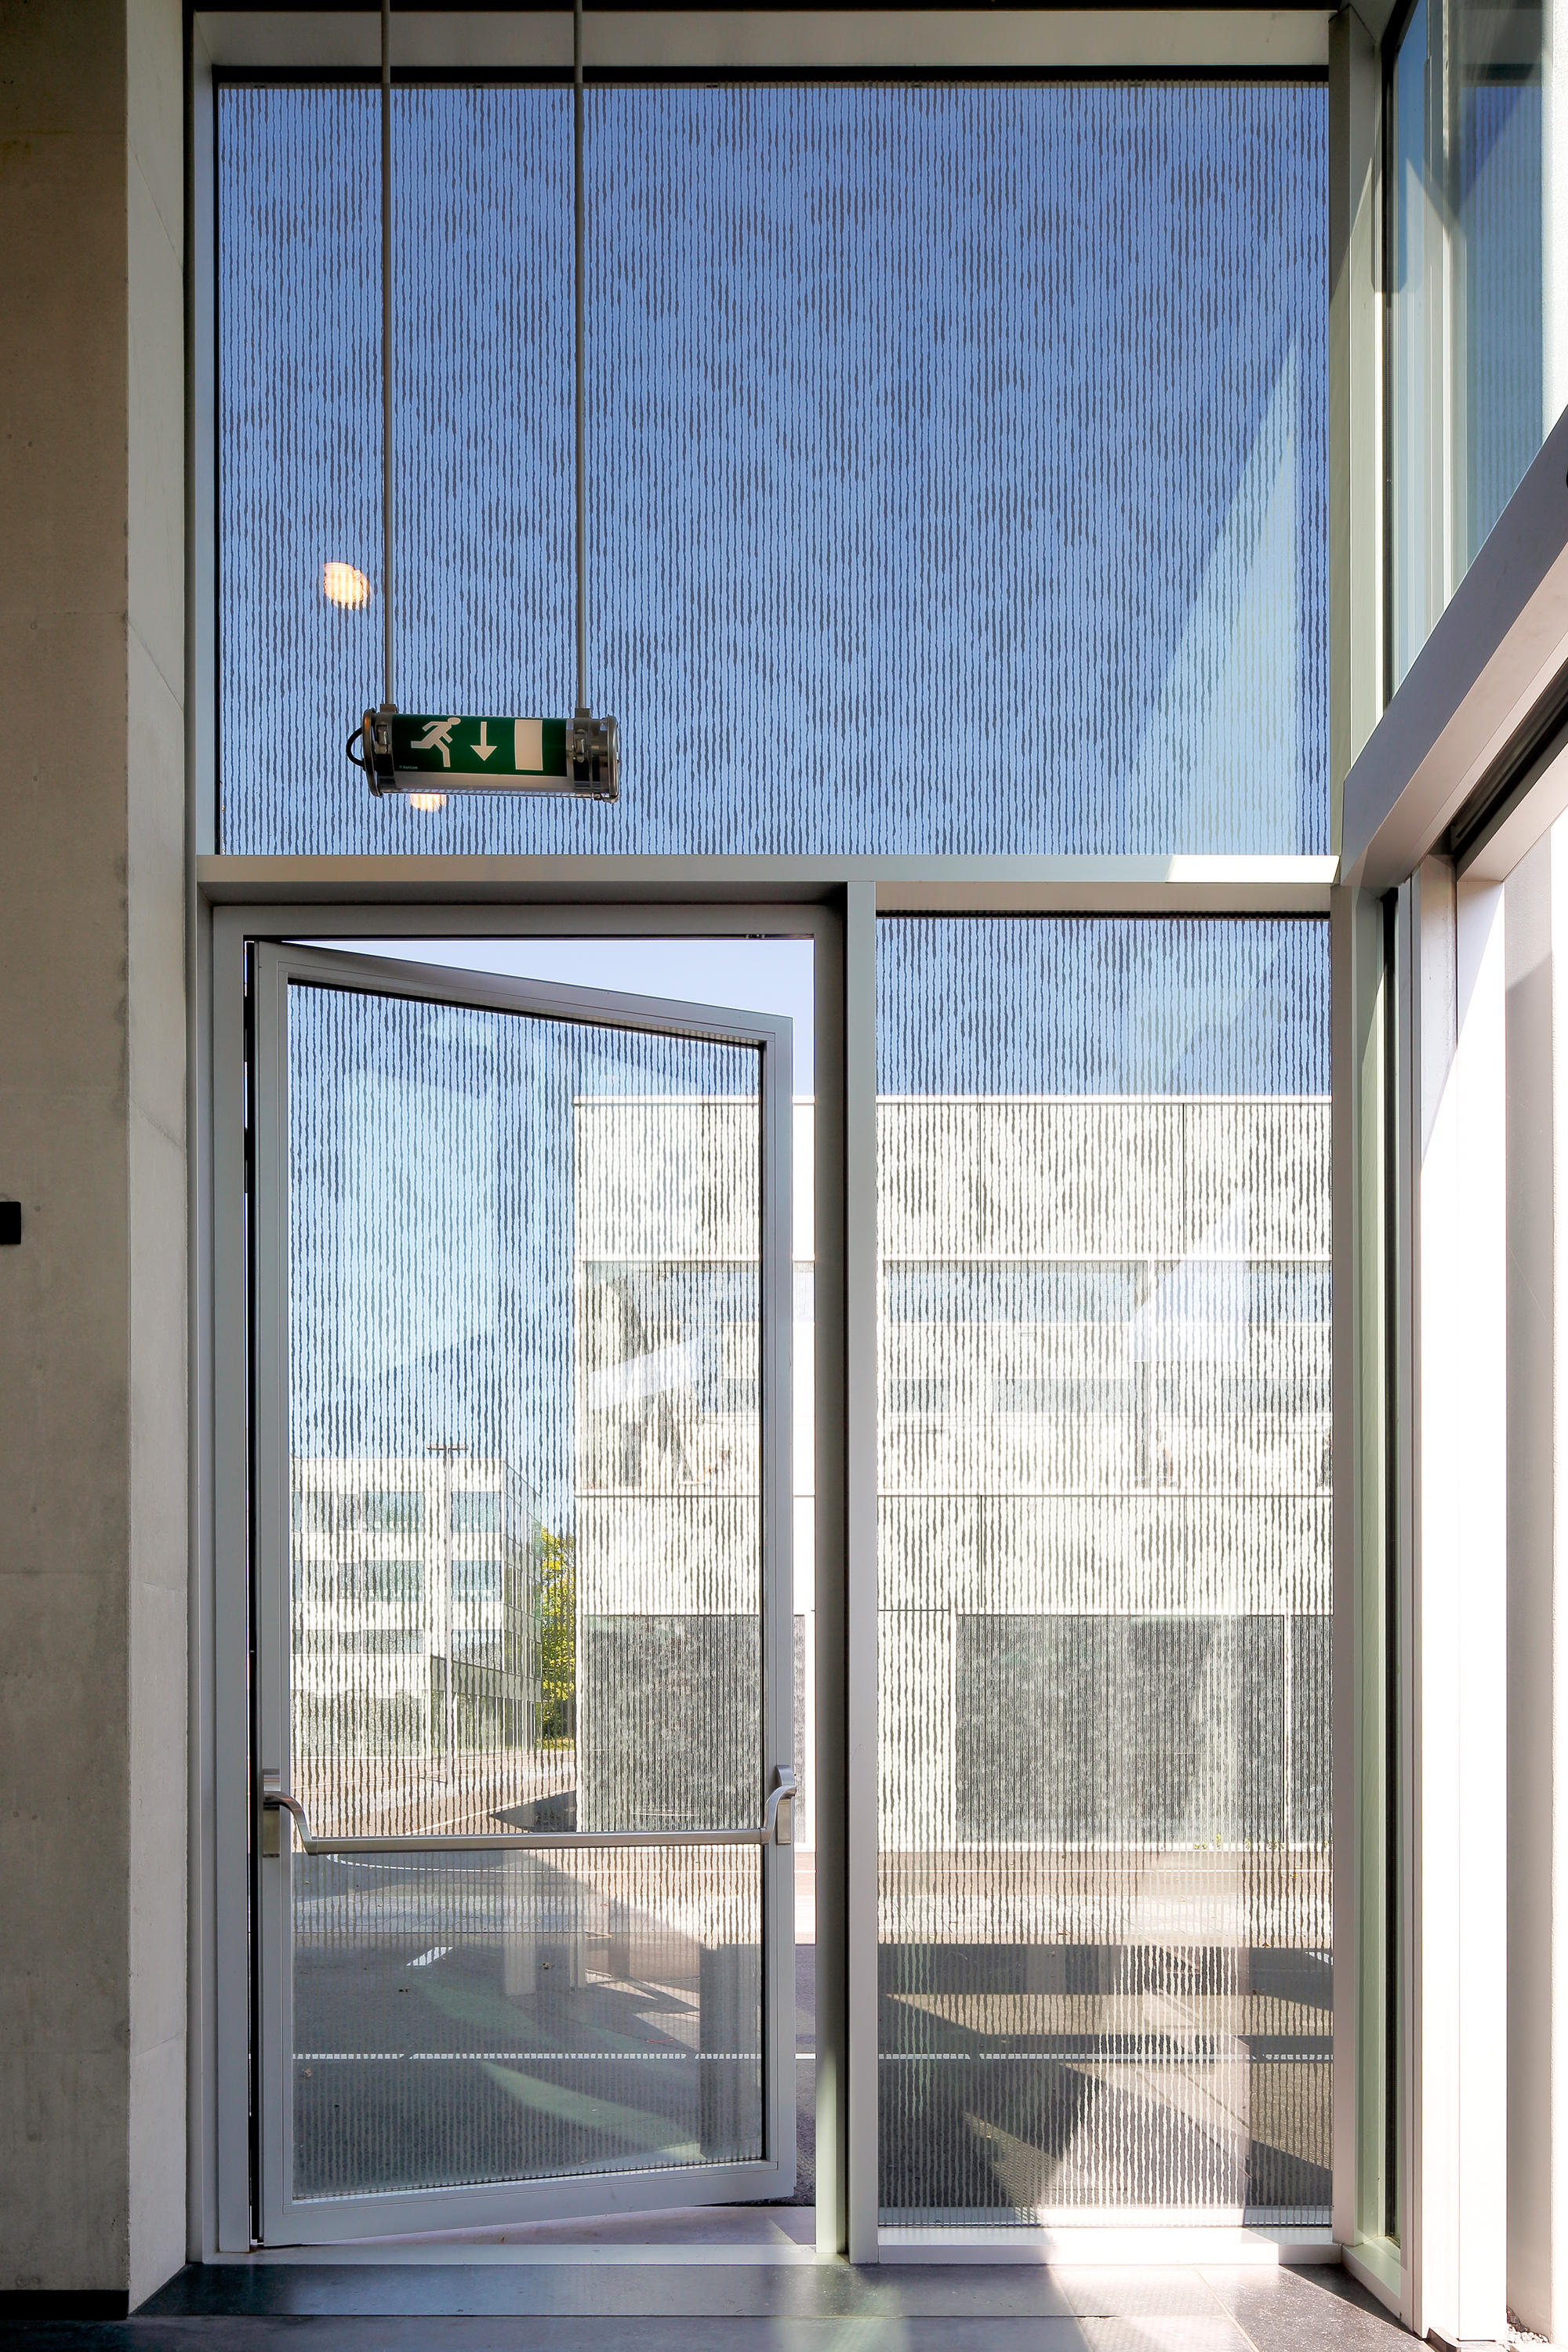 Forster unico RC2 | Safety door by Forster Profile Systems | Entrance doors & FORSTER UNICO RC2 | SAFETY DOOR - Entrance doors from Forster ...